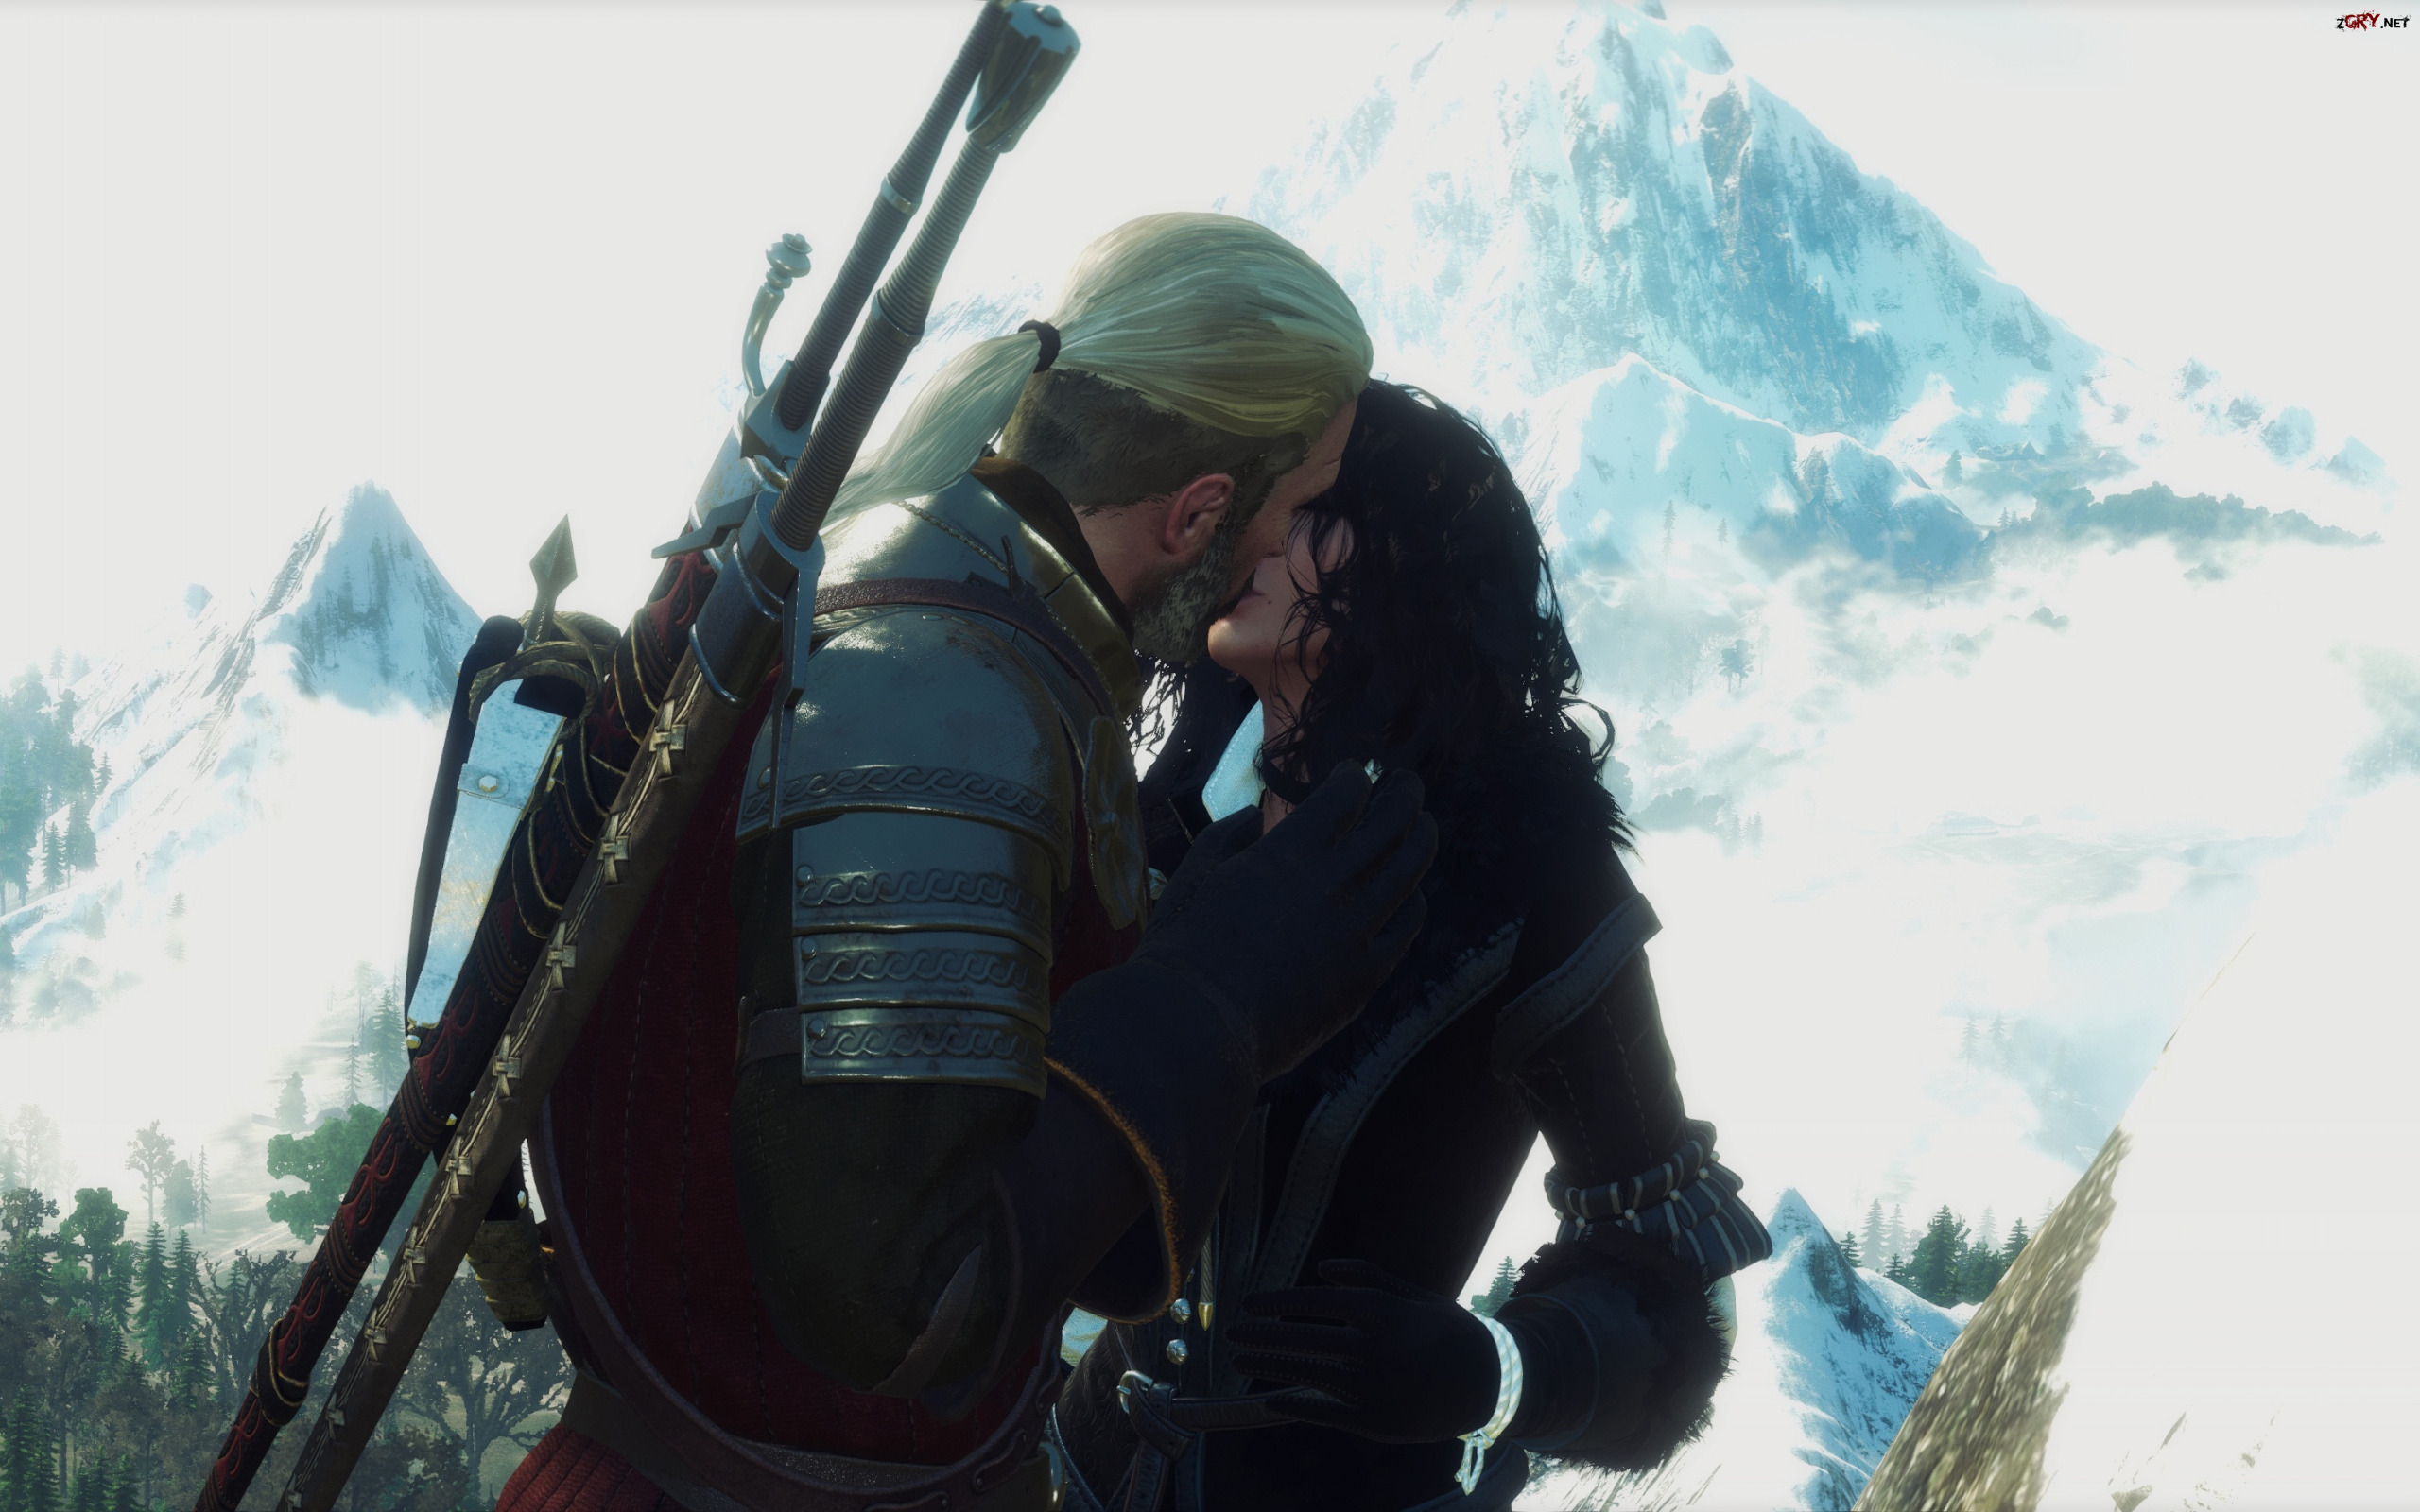 Gra, The Witcher 3 Wild Hunt, Wiedźmin 3 Dziki Gon, Geralt, Yennefer, Pocałunek